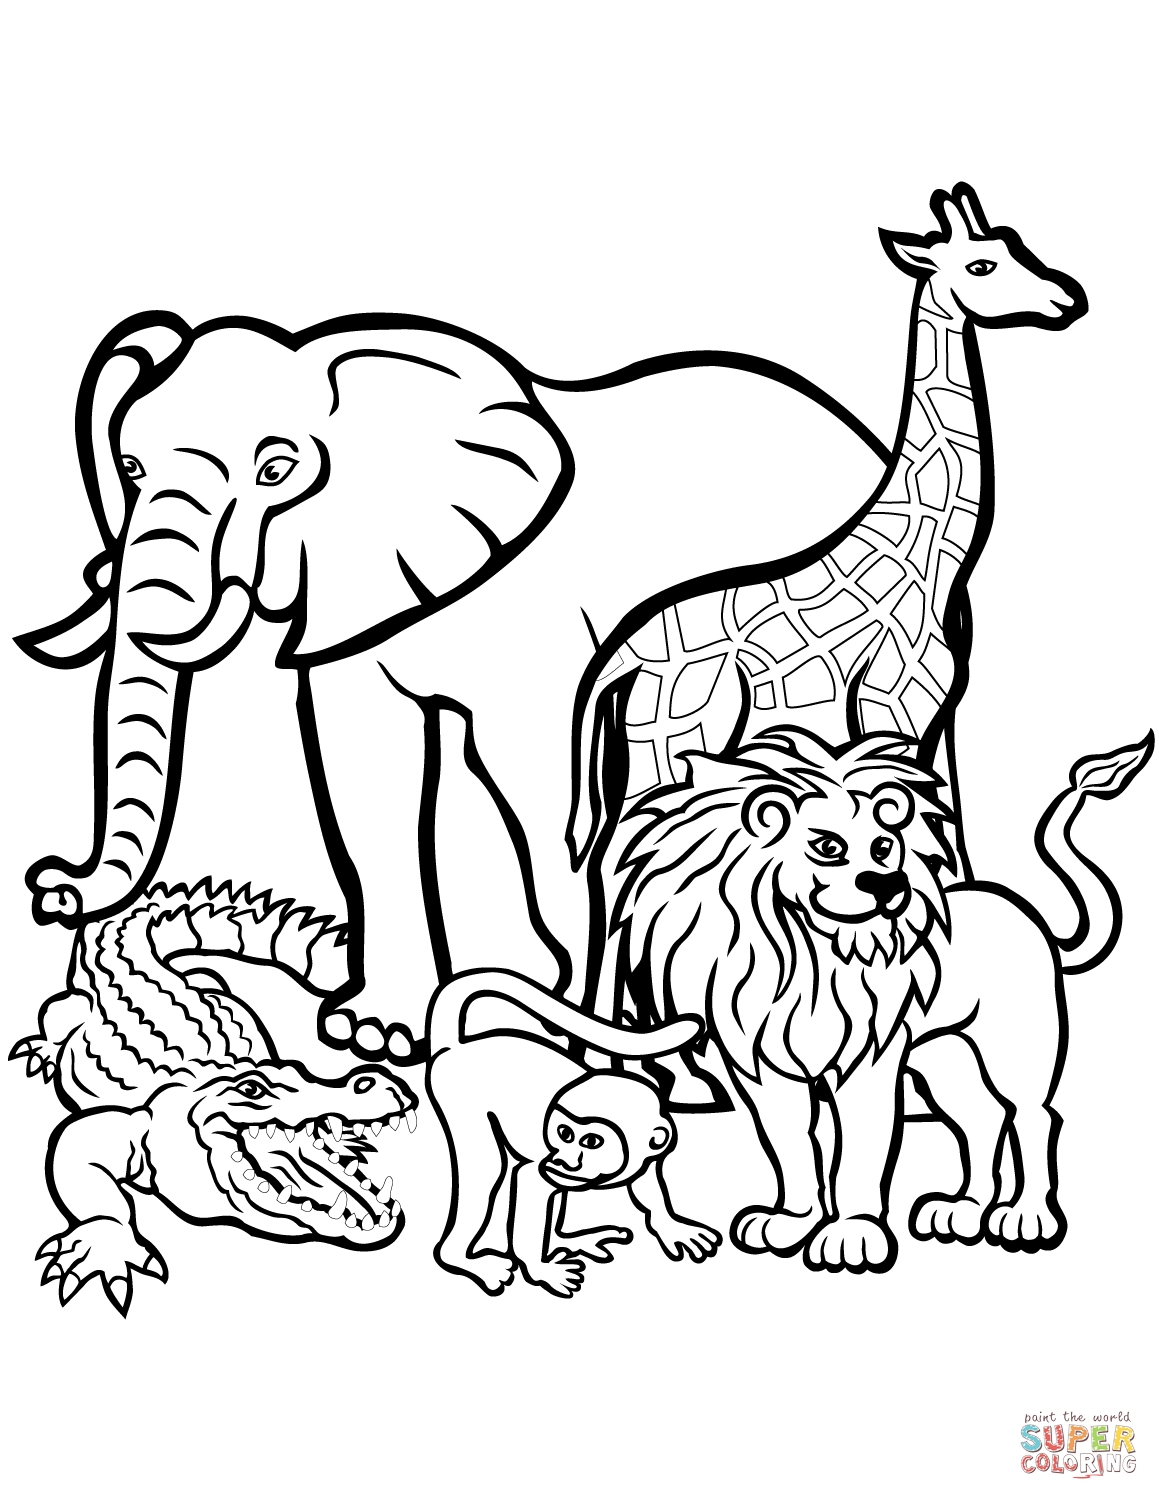 free printable zoo coloring pages top 25 free printable zoo coloring pages online coloring printable zoo free pages